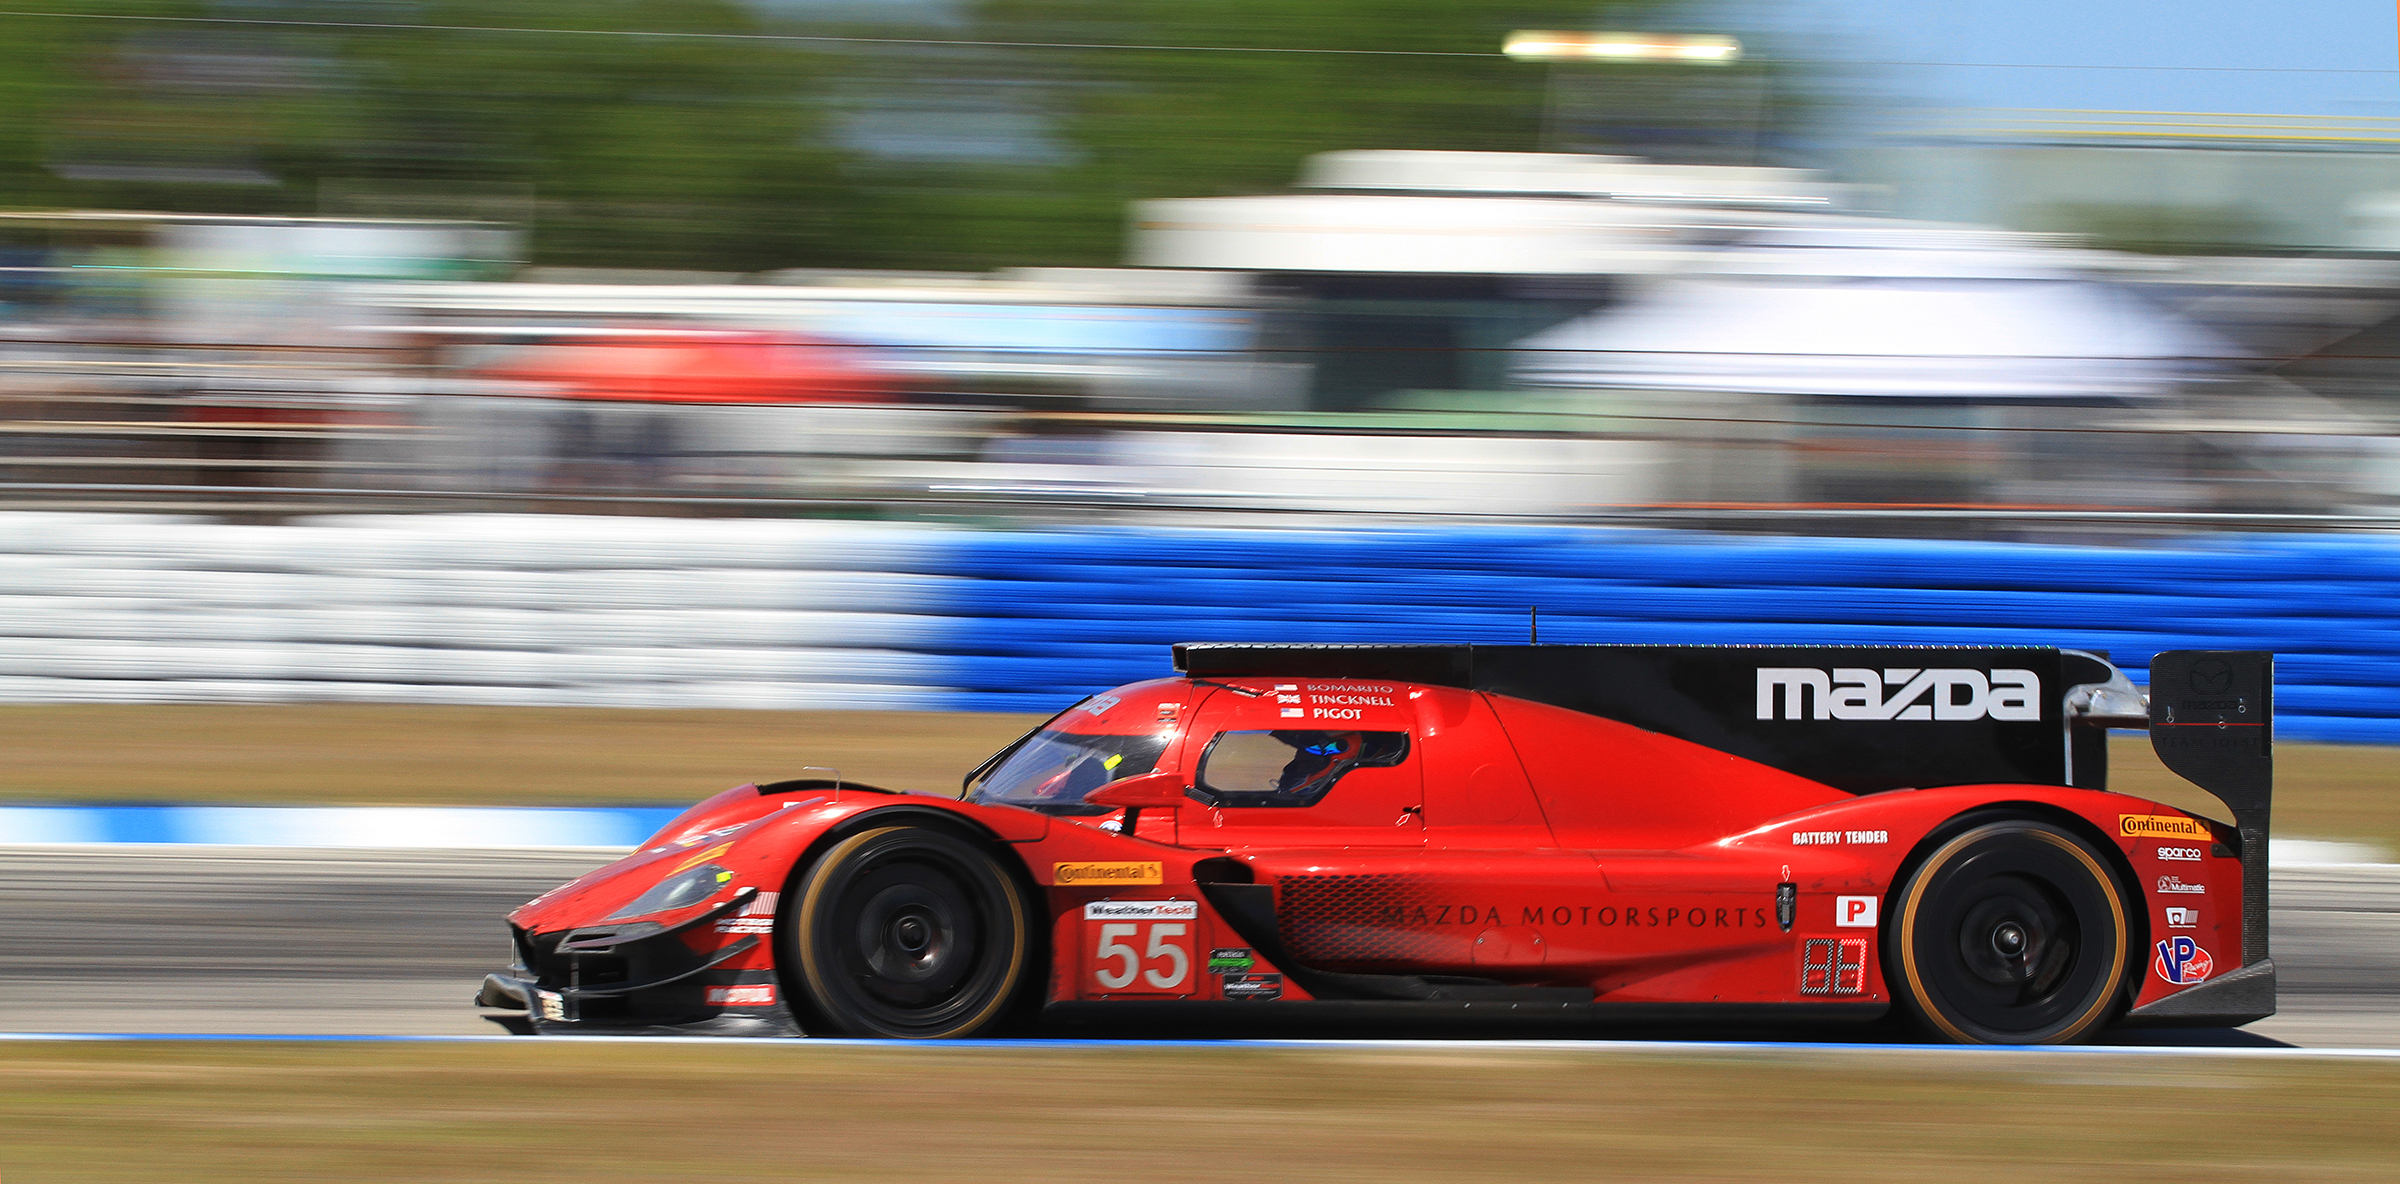 Mazda was second at the final pit stop, but was once again struck down by mechanical woes with victory seemingly within reach. (Chris Jasurek/Epoch Times)